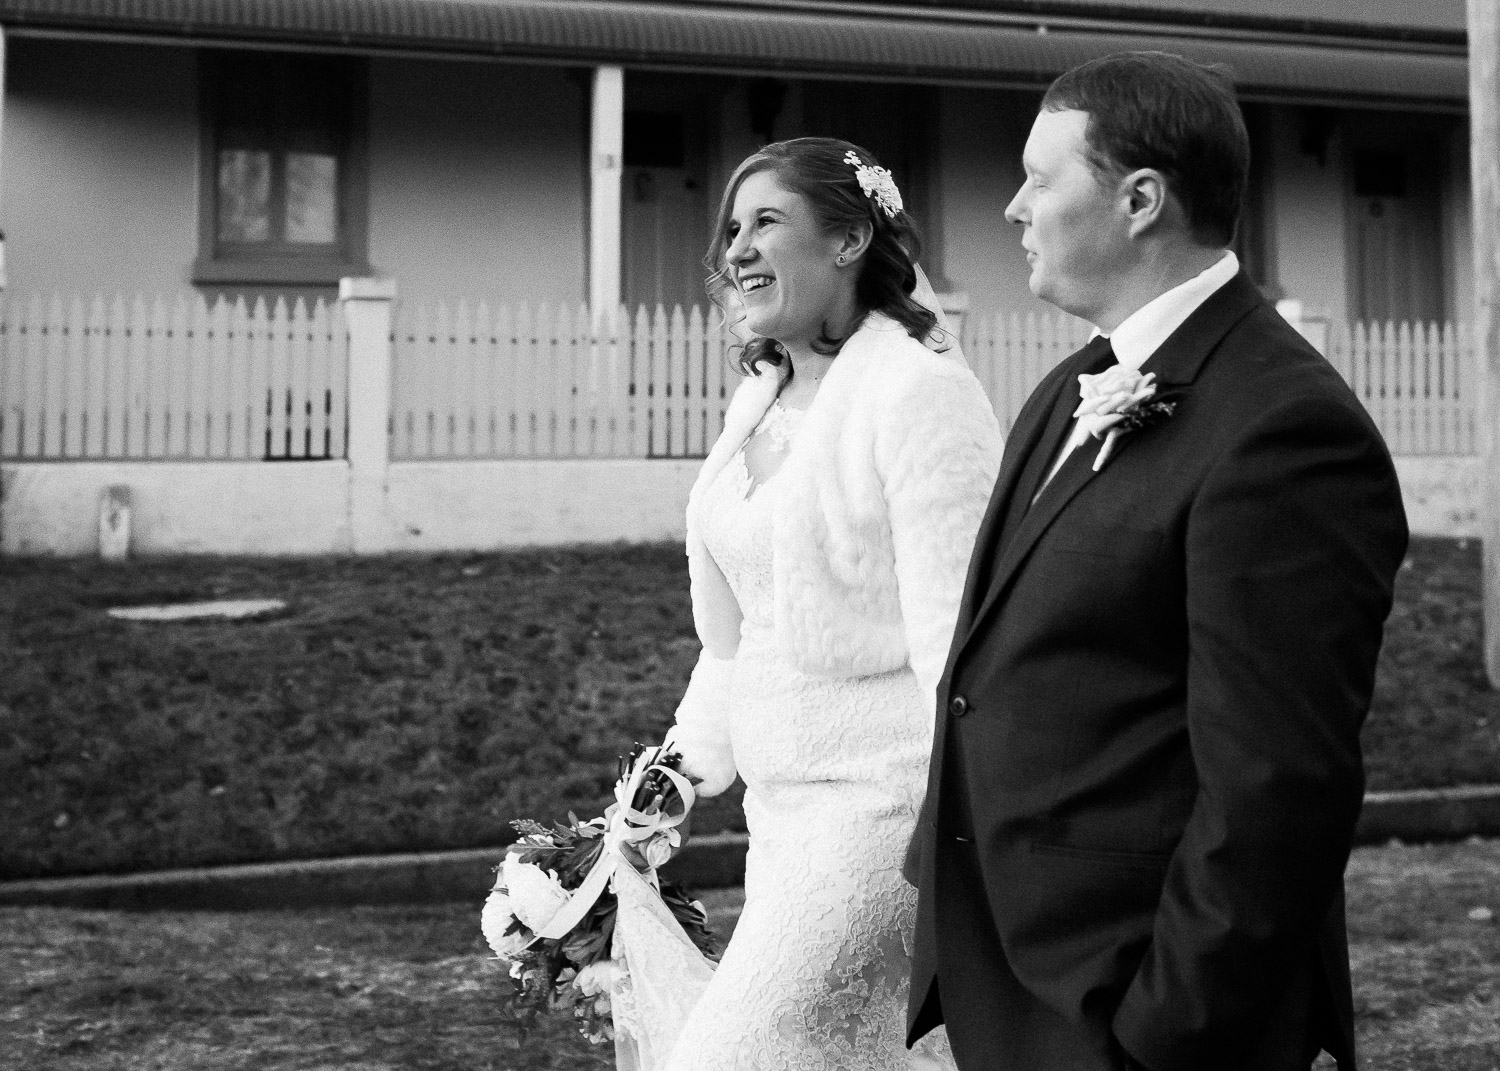 Wedding photographer milthorpe nsw